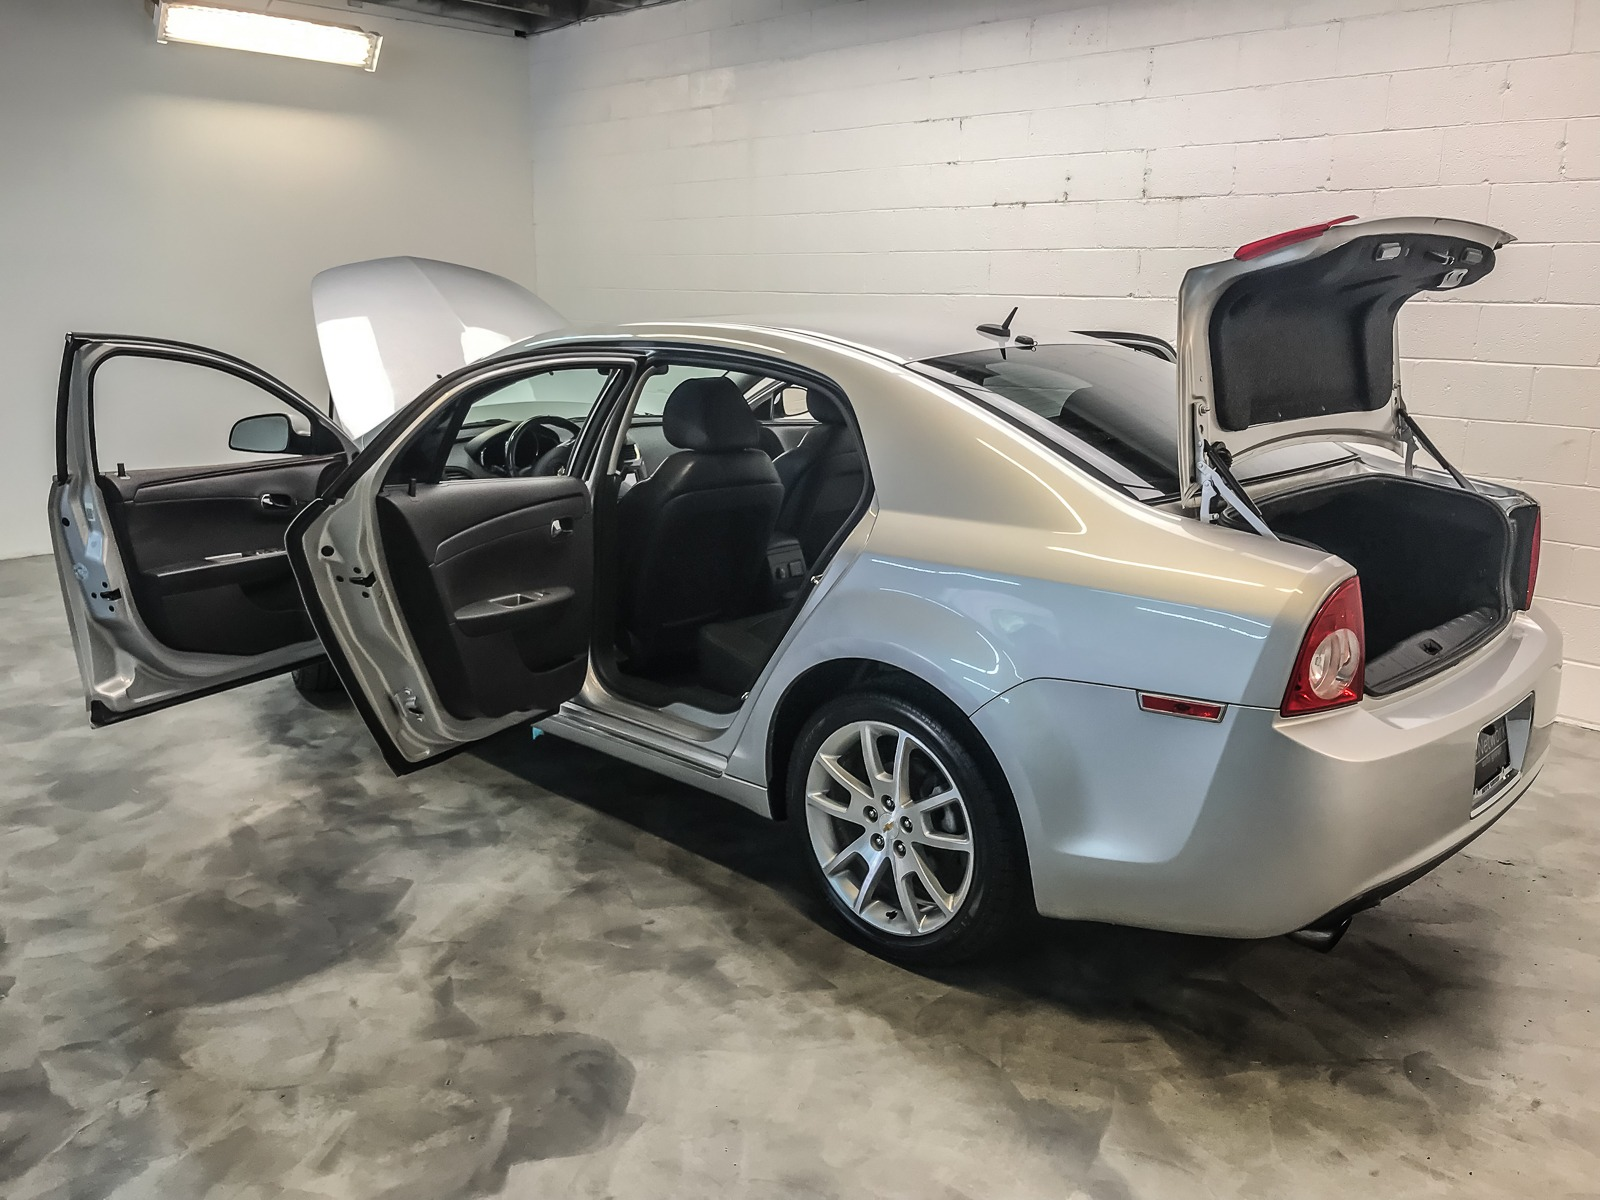 2011 Chevy Malibu For Sale >> Used 2011 Chevrolet Malibu Ltz For Sale Special Pricing